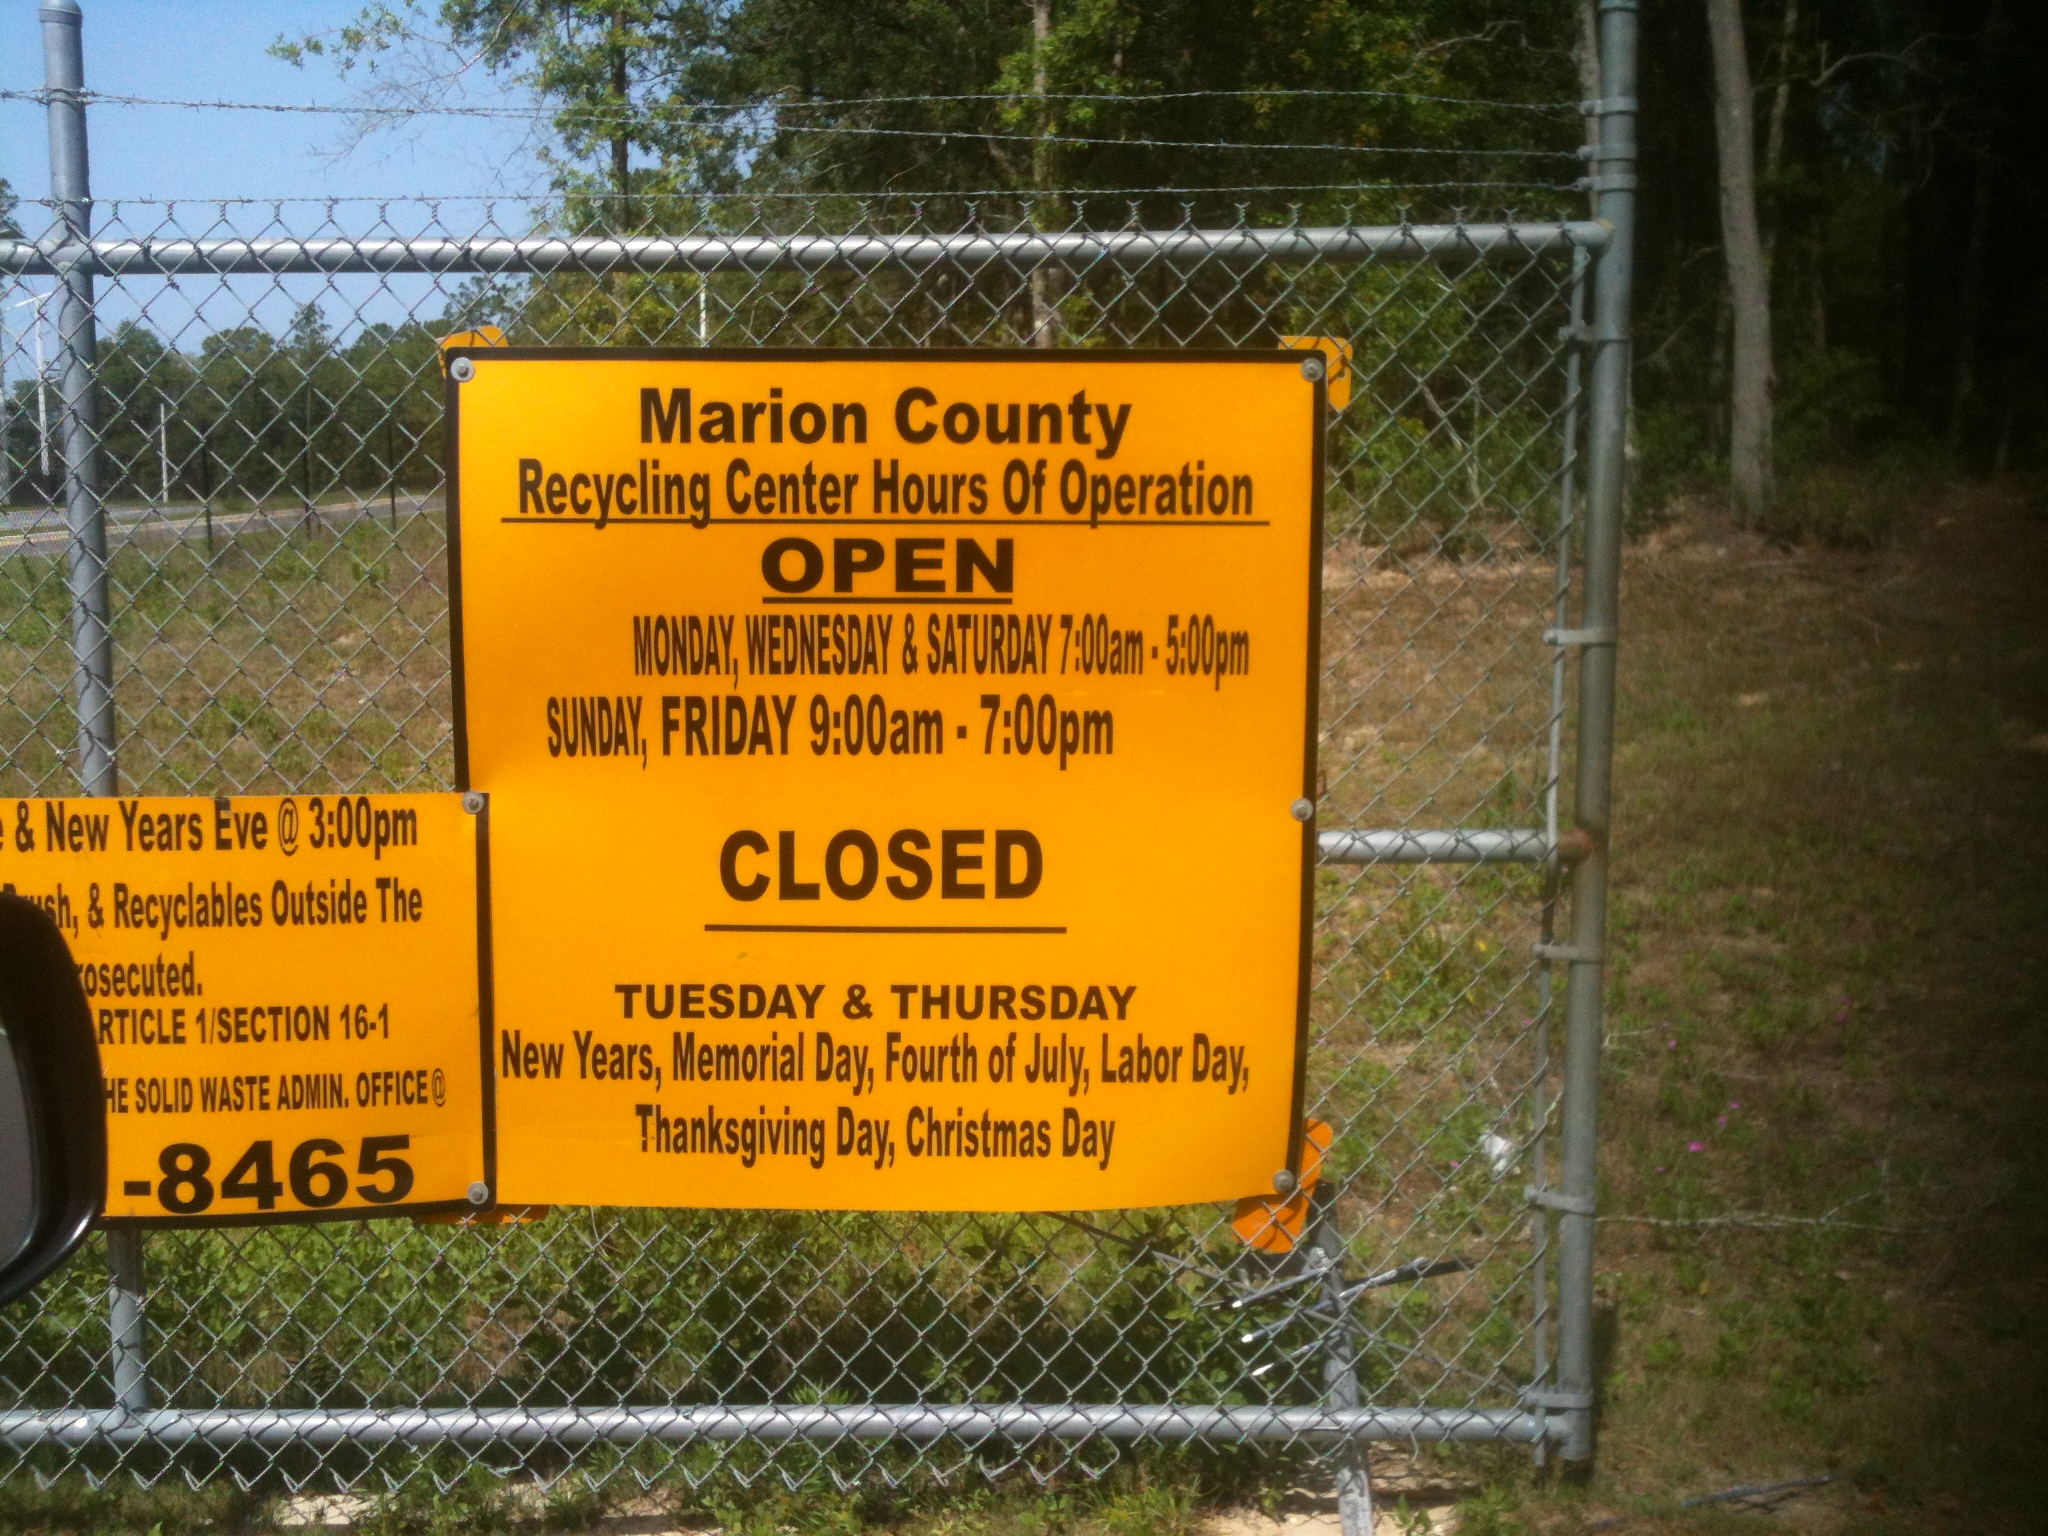 Marion County Recycling Center 6800 W Highway 40 Ocala